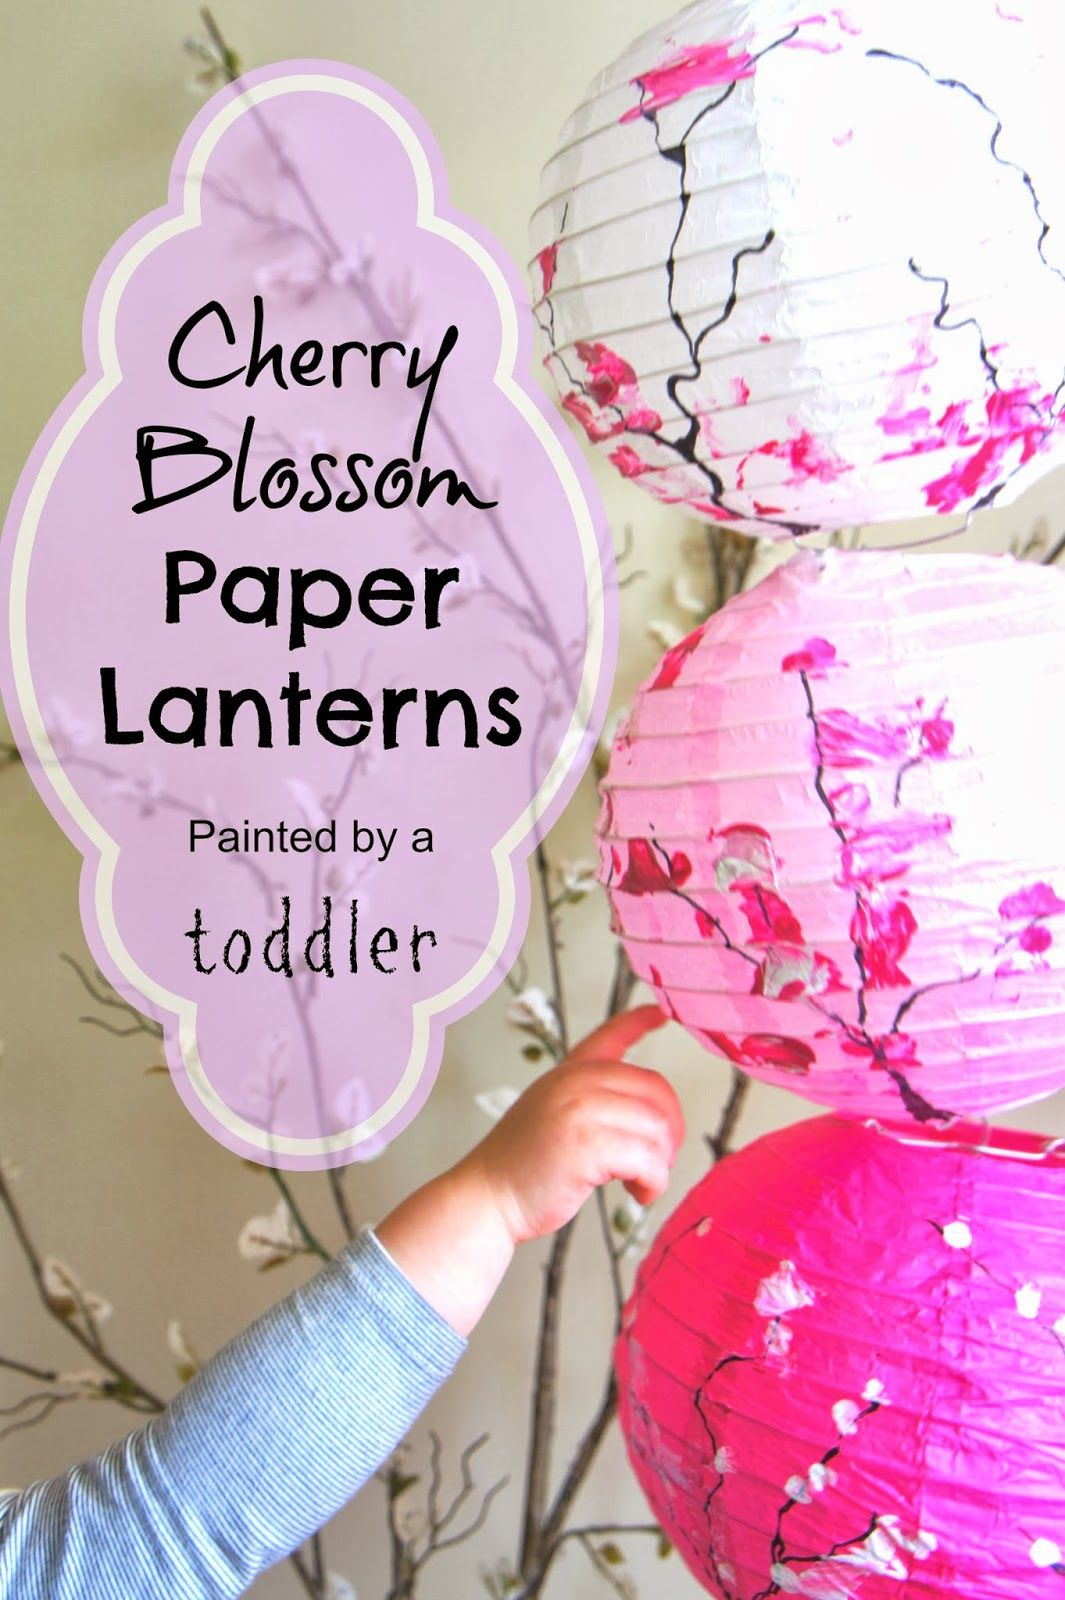 Cherry Blossom Paper Lanterns decorated by a